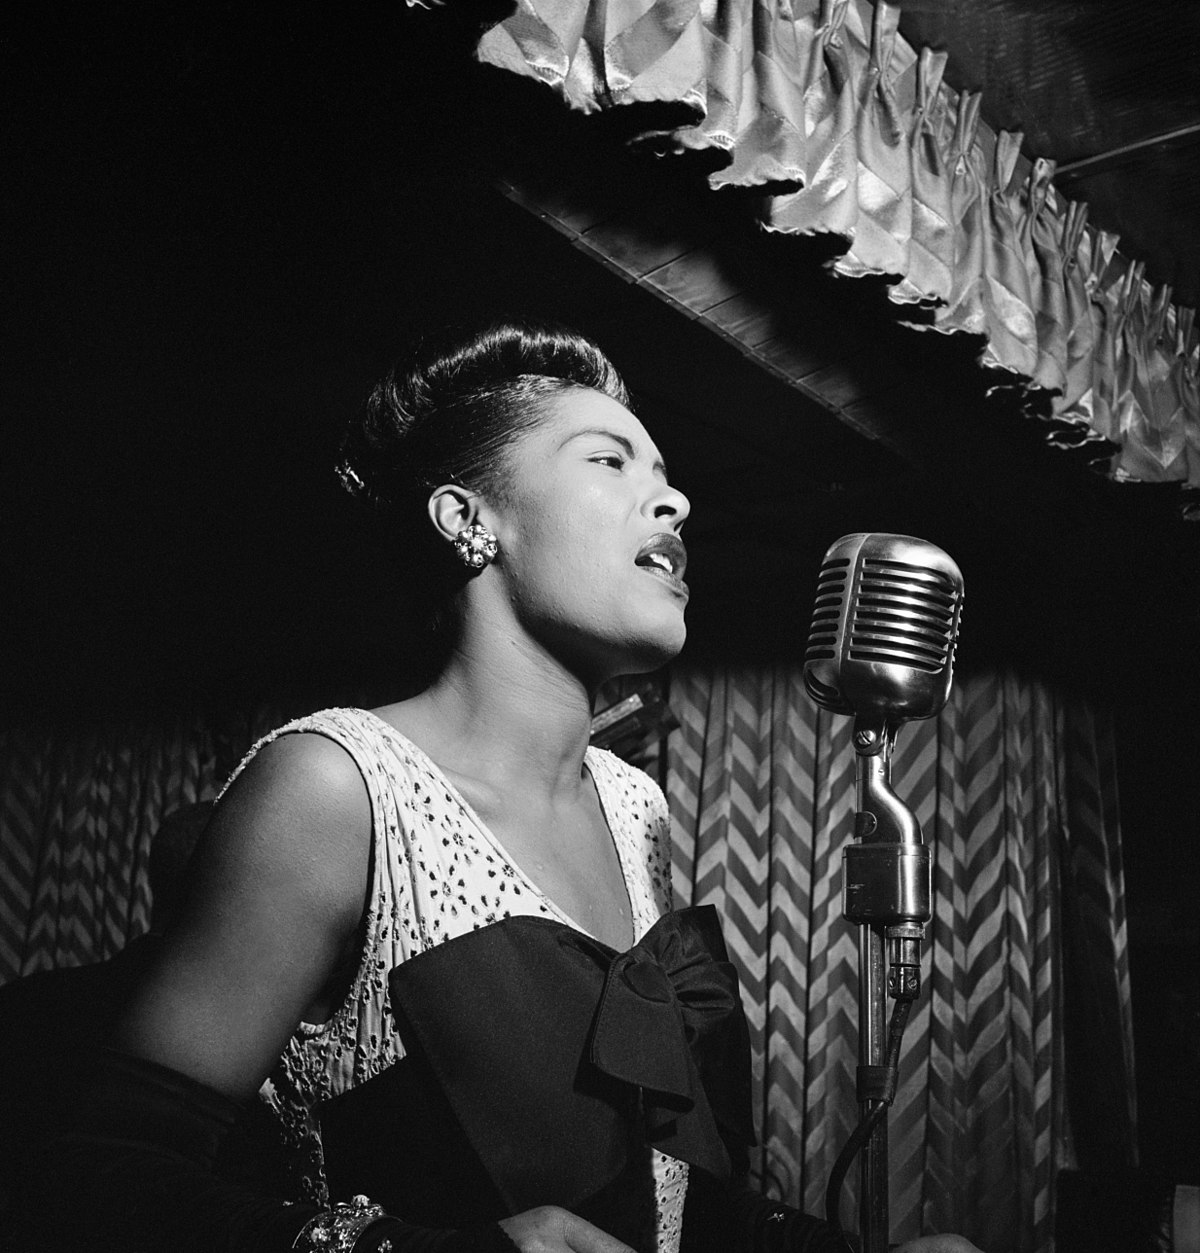 17358b45d31 Billie Holiday - Wikipedia